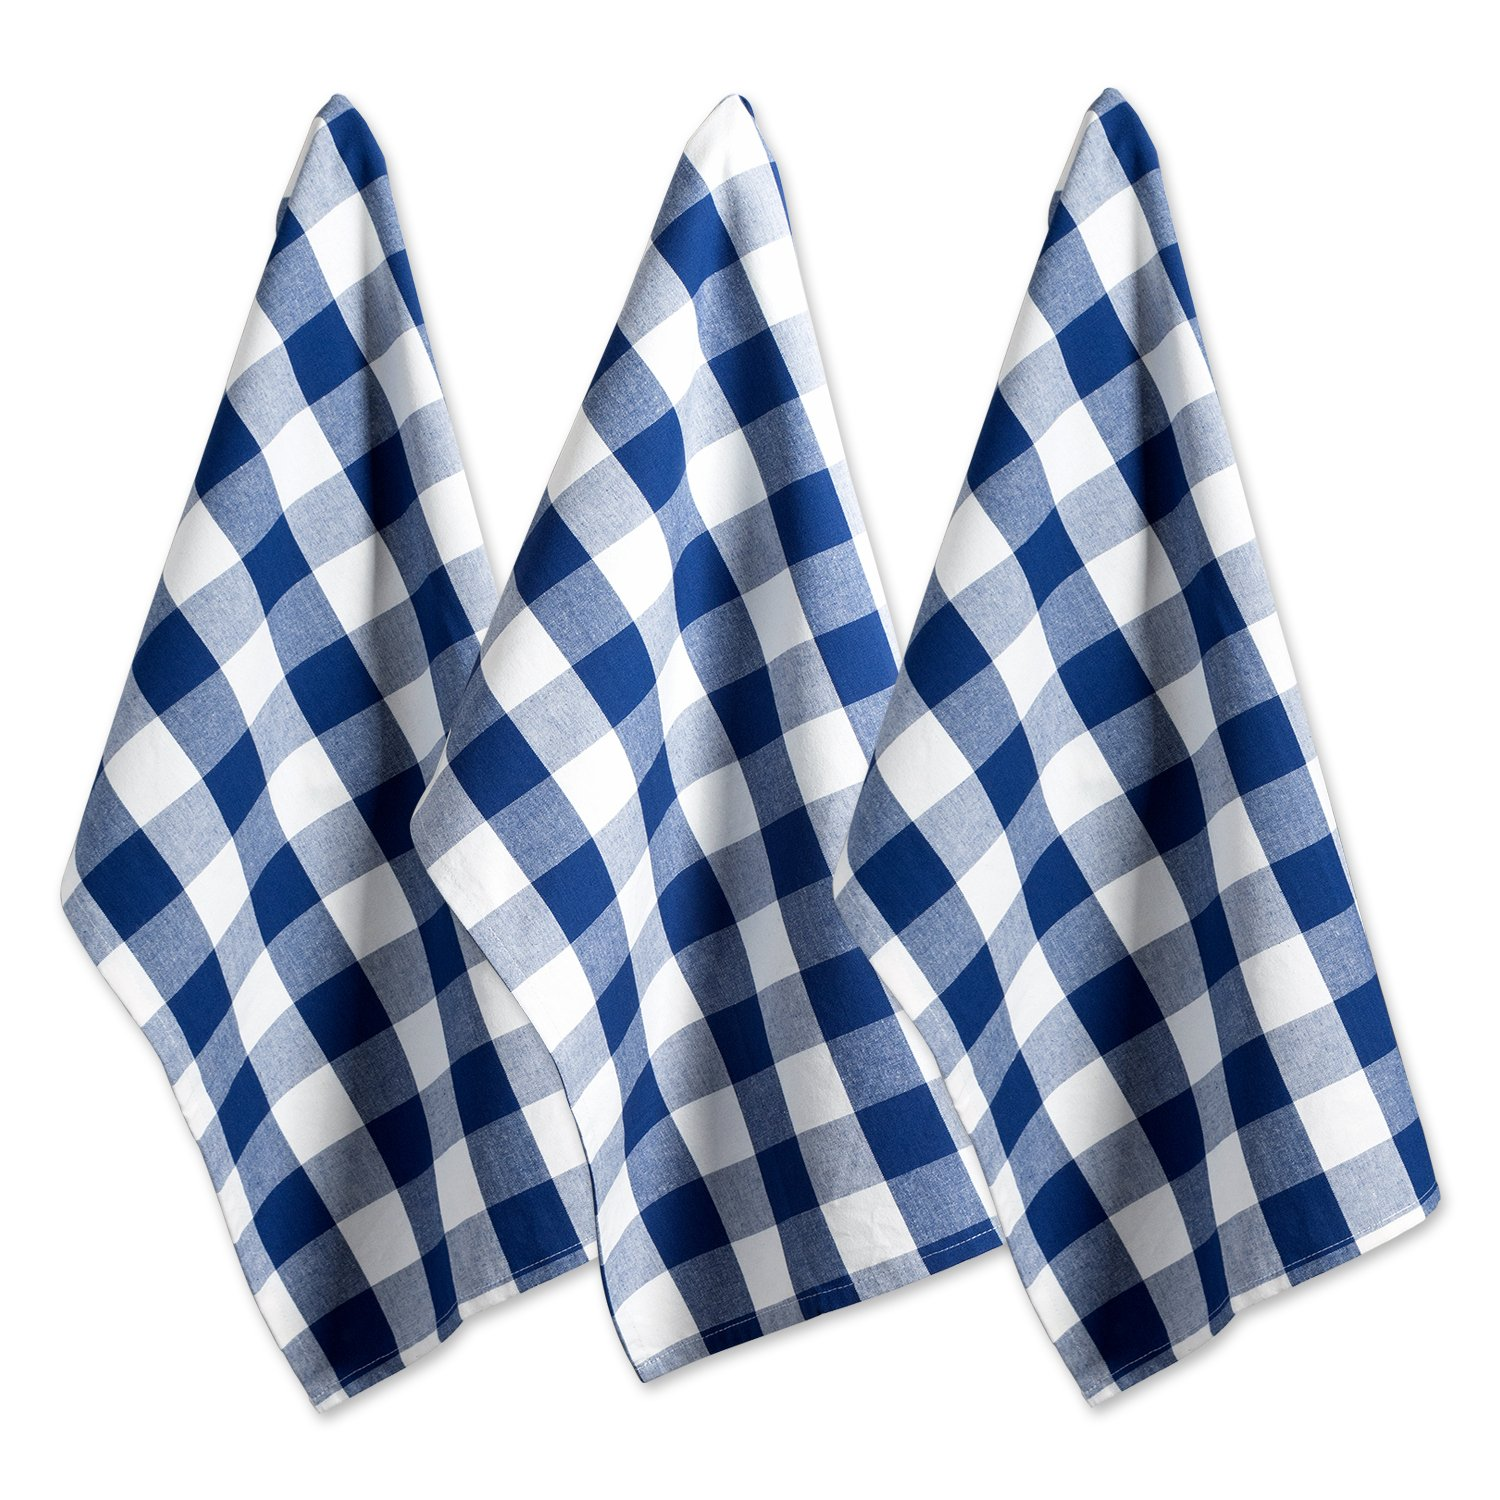 """DII Cotton Buffalo Check Plaid Dish Towels, (20x30"""", Set of 3) Monogrammable Oversized Kitchen Towels for Drying, Cleaning, Cooking, & Baking - Navy & Cream"""